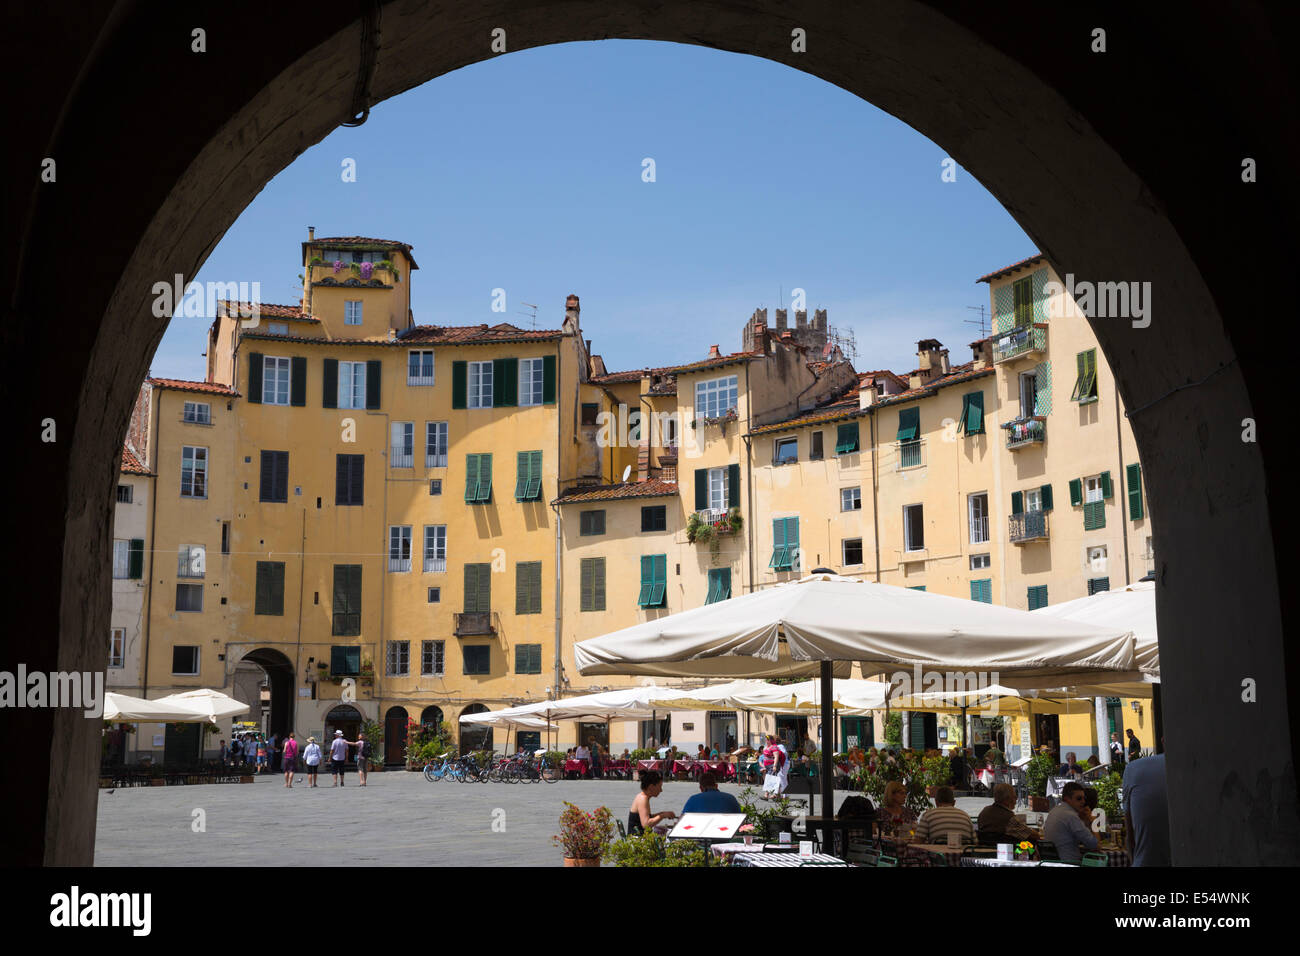 Restaurants in the Piazza Anfiteatro Romano, Lucca, Tuscany, Italy, Europe - Stock Image